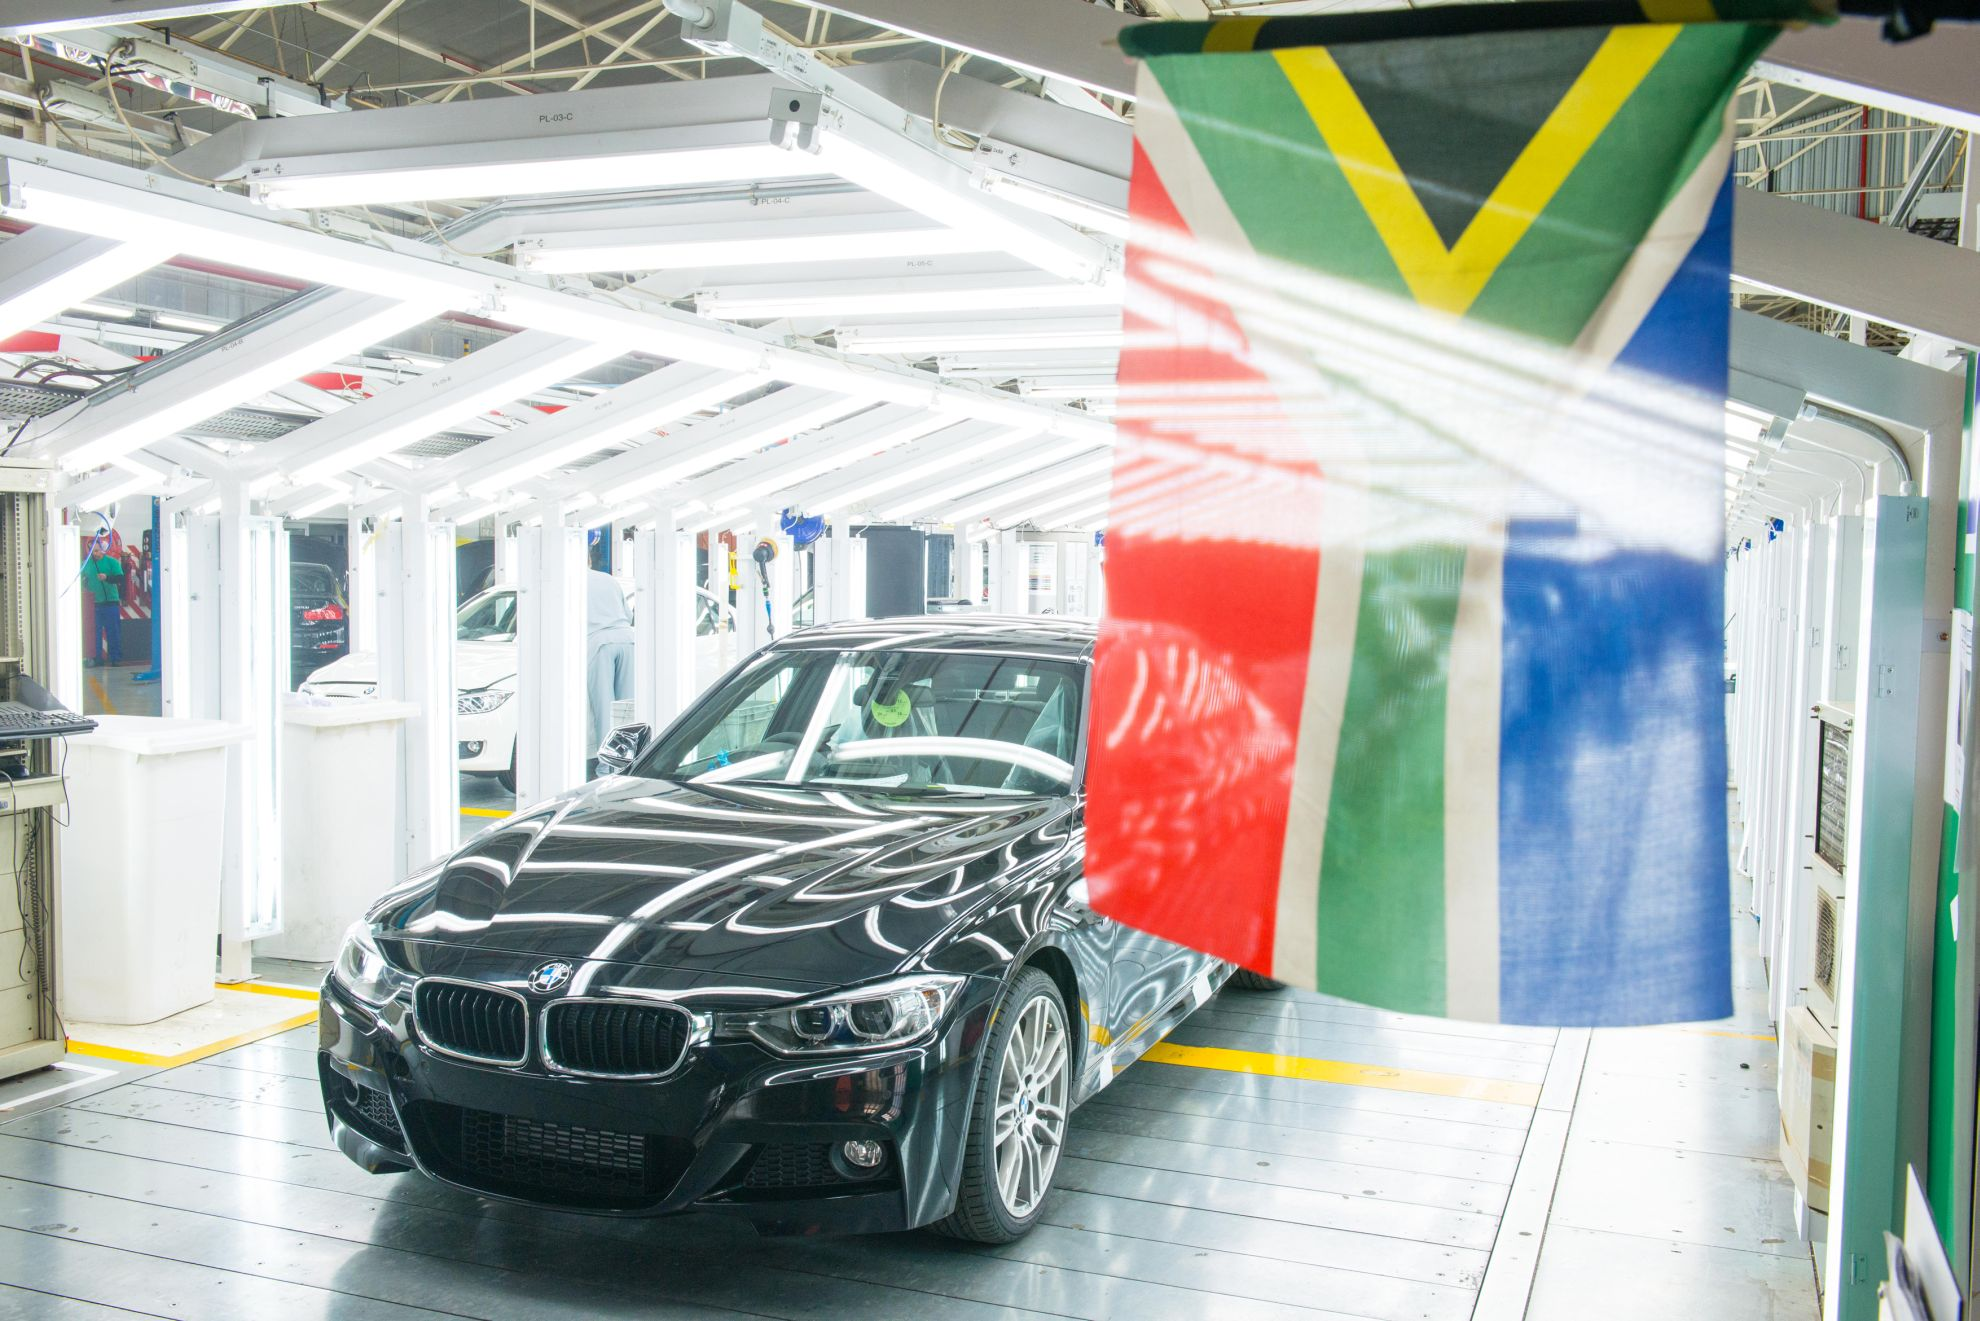 BMW-Group-South-Africa-named-number-one-employer-in-the-local-automotive-industry